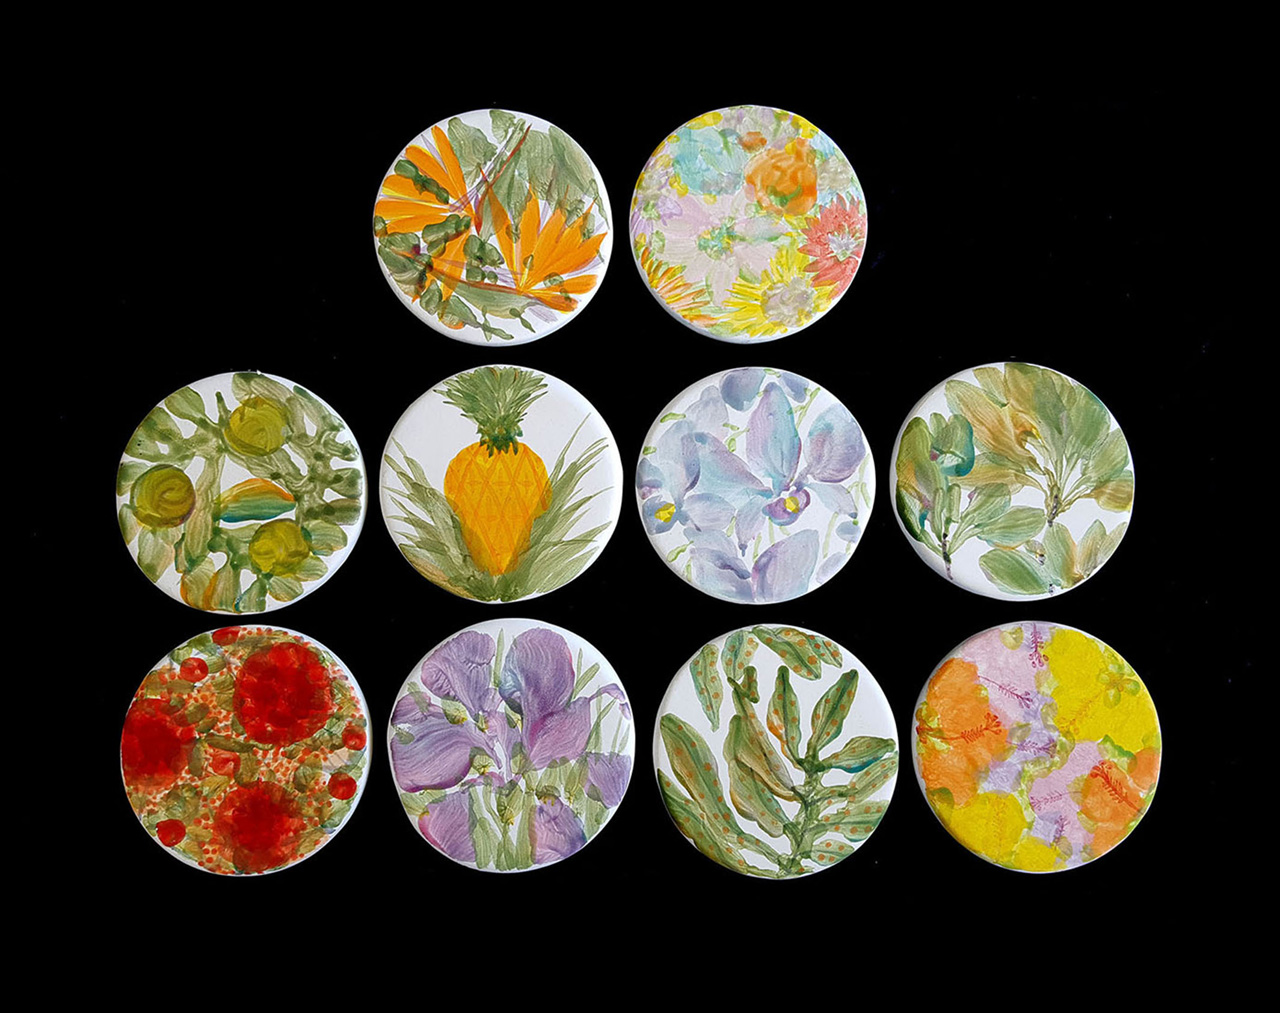 Ten circular coasters hand painted with various Hawaiian plants